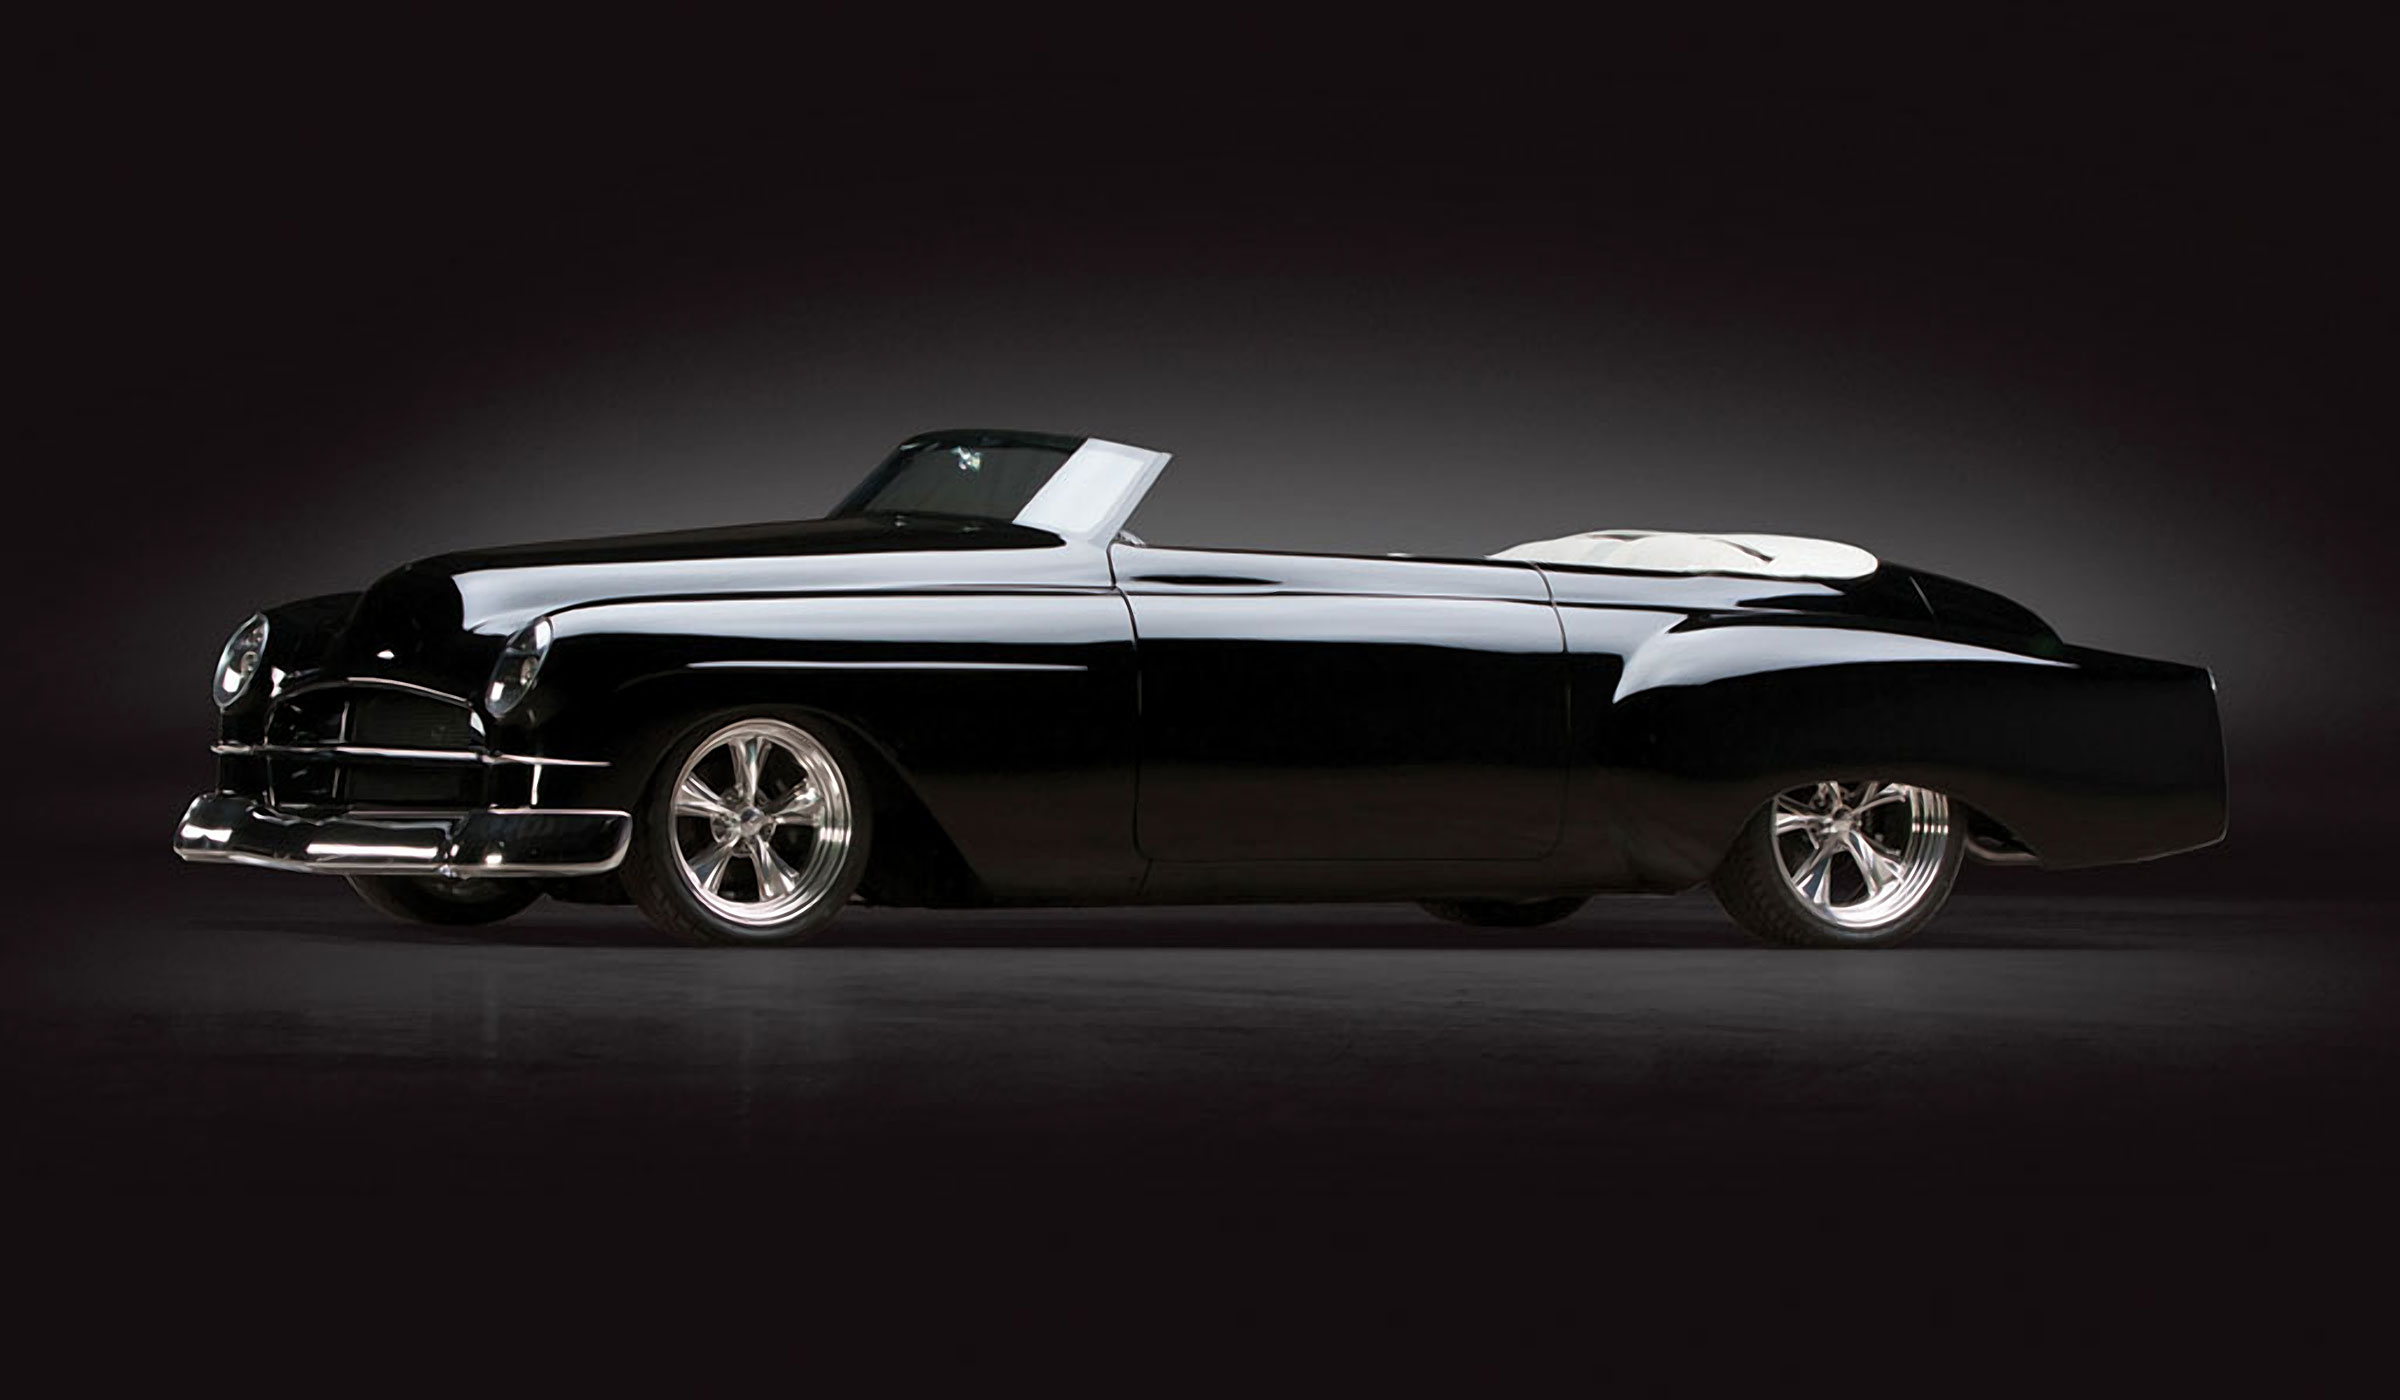 1949 CADILLAC SERIES 62 CONVERTIBLE CUSTOM